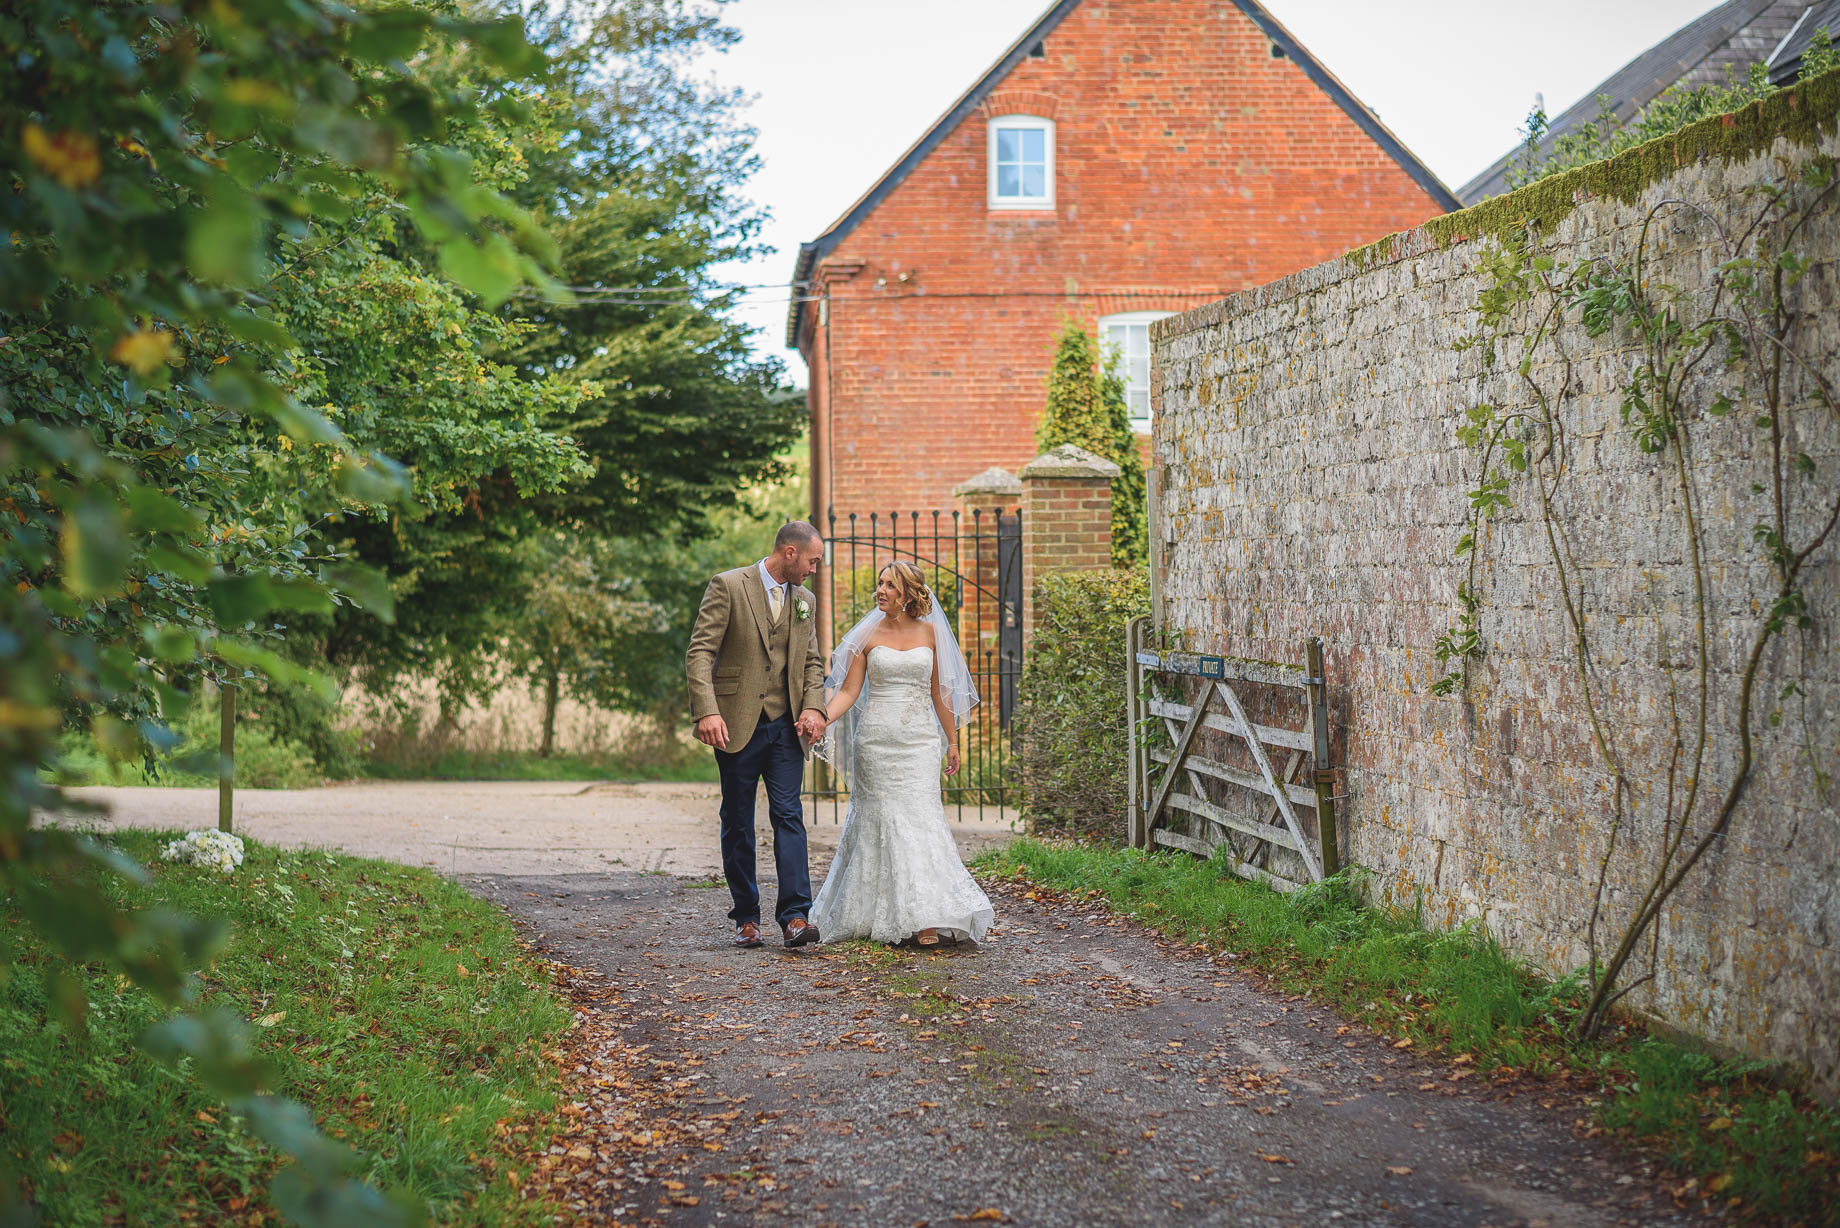 Bury Court Barn wedding photography - Guy Collier - Kate and Russ (107 of 187)